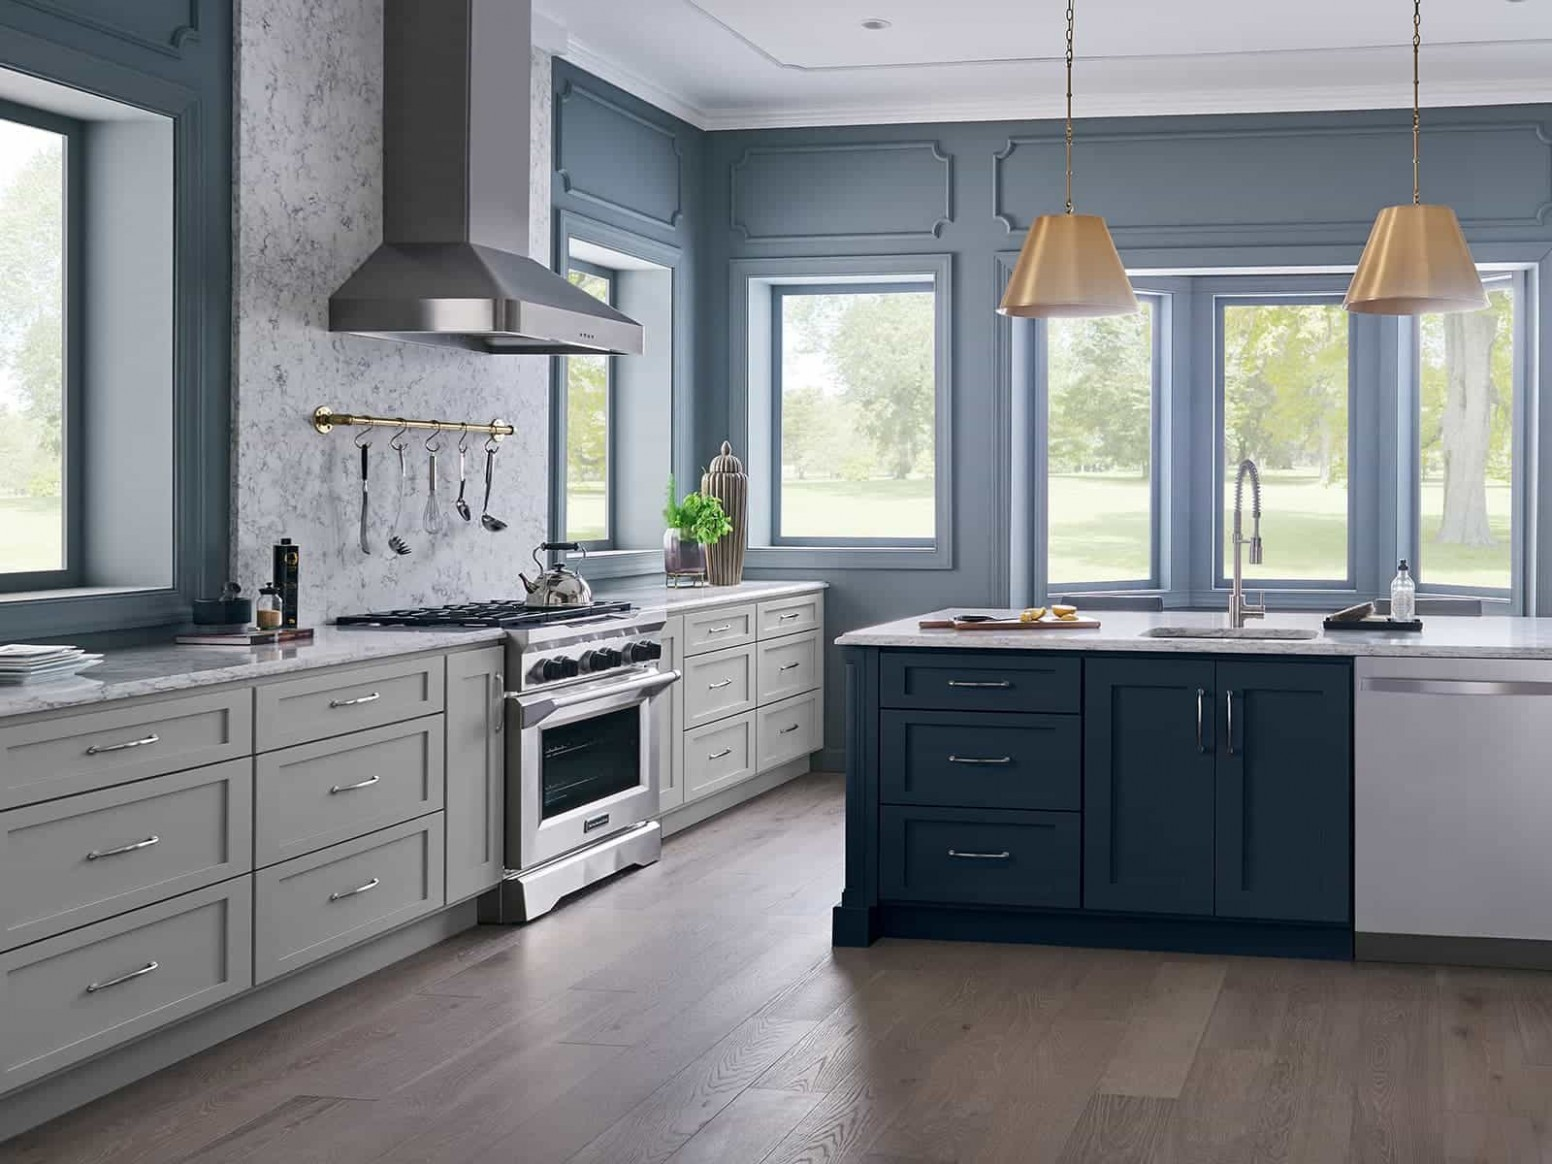 Kitchens Without Upper Cabinets - Bertch Cabinet Manufacturing - Kitchen Design Without Cabinets